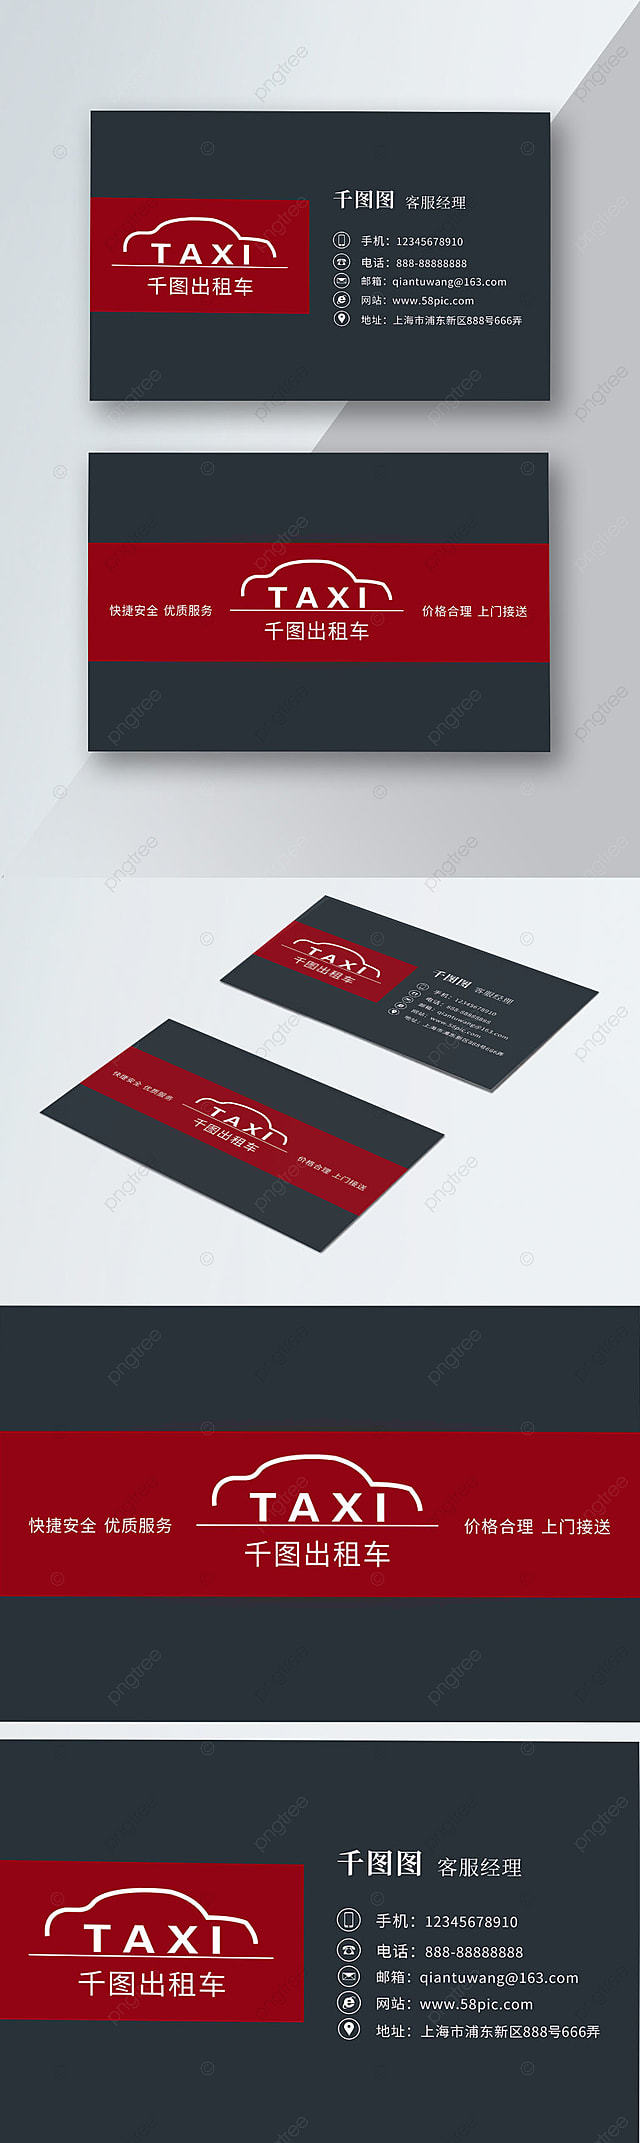 Taxi Business Card Vector Material Taxi Business Card